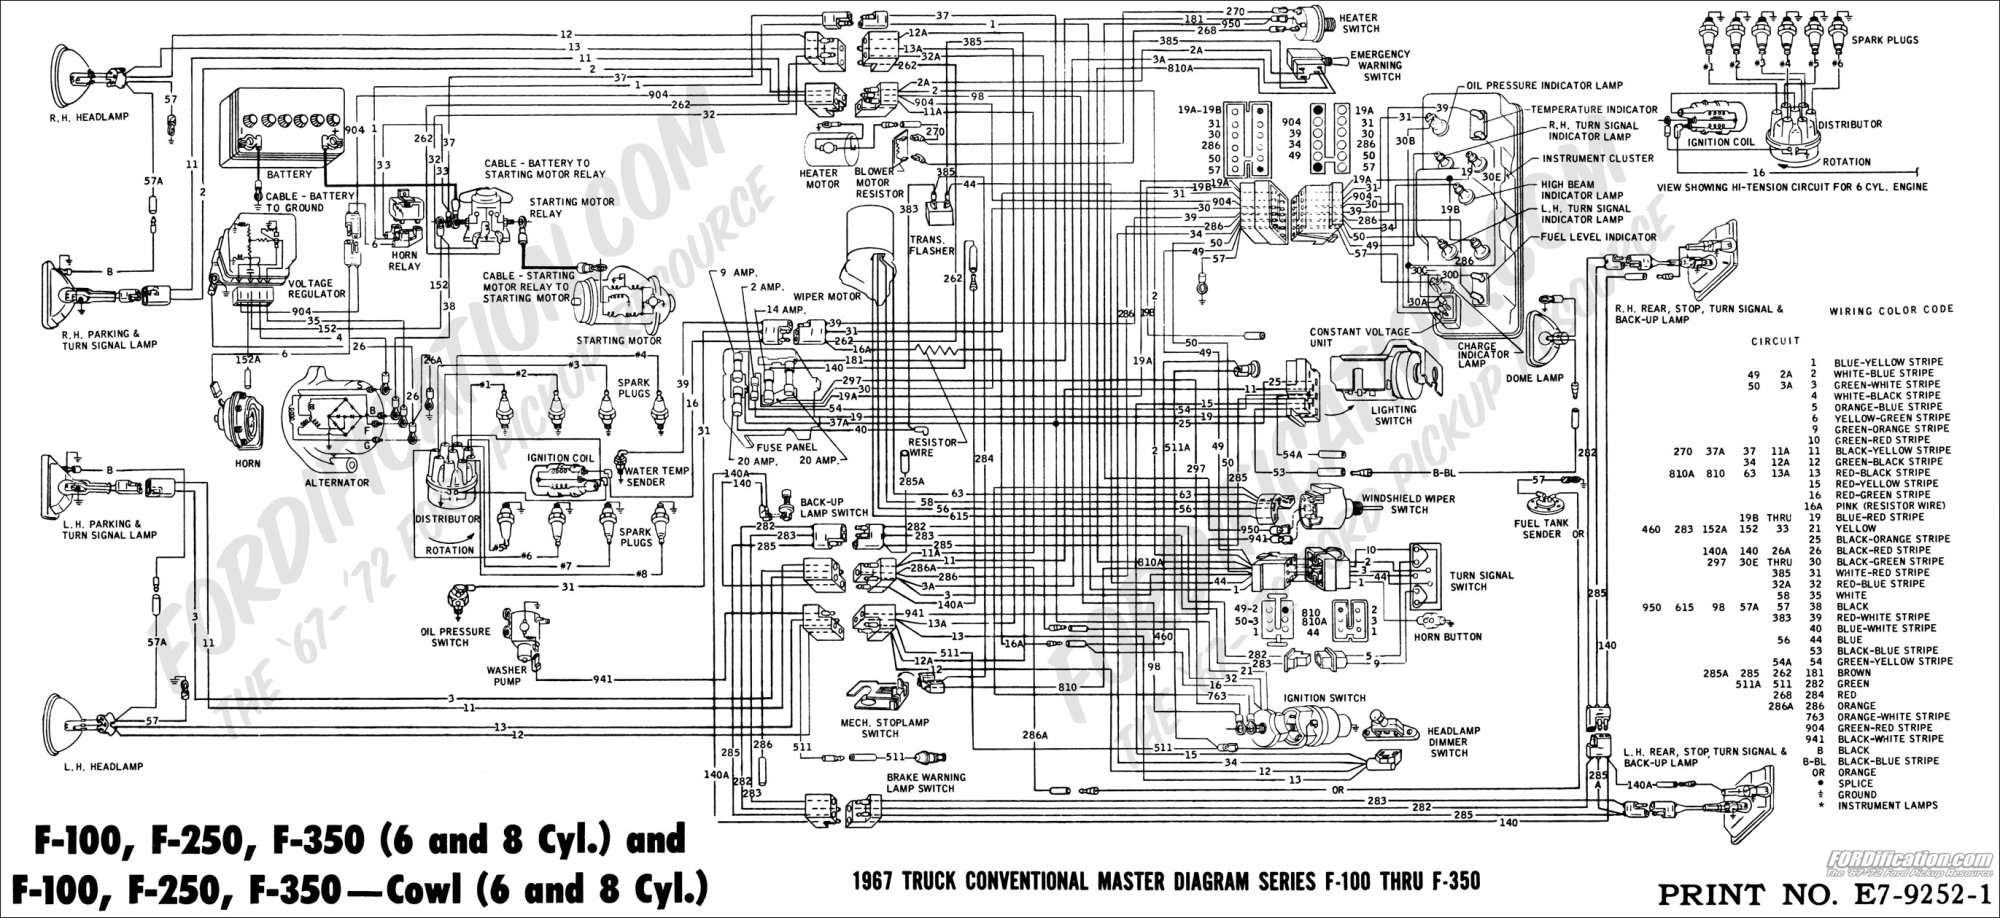 hight resolution of ford truck diagrams detailed wiring diagram 1993 ford f 150 fuse box diagram 1995 ford truck wiring diagram ford f